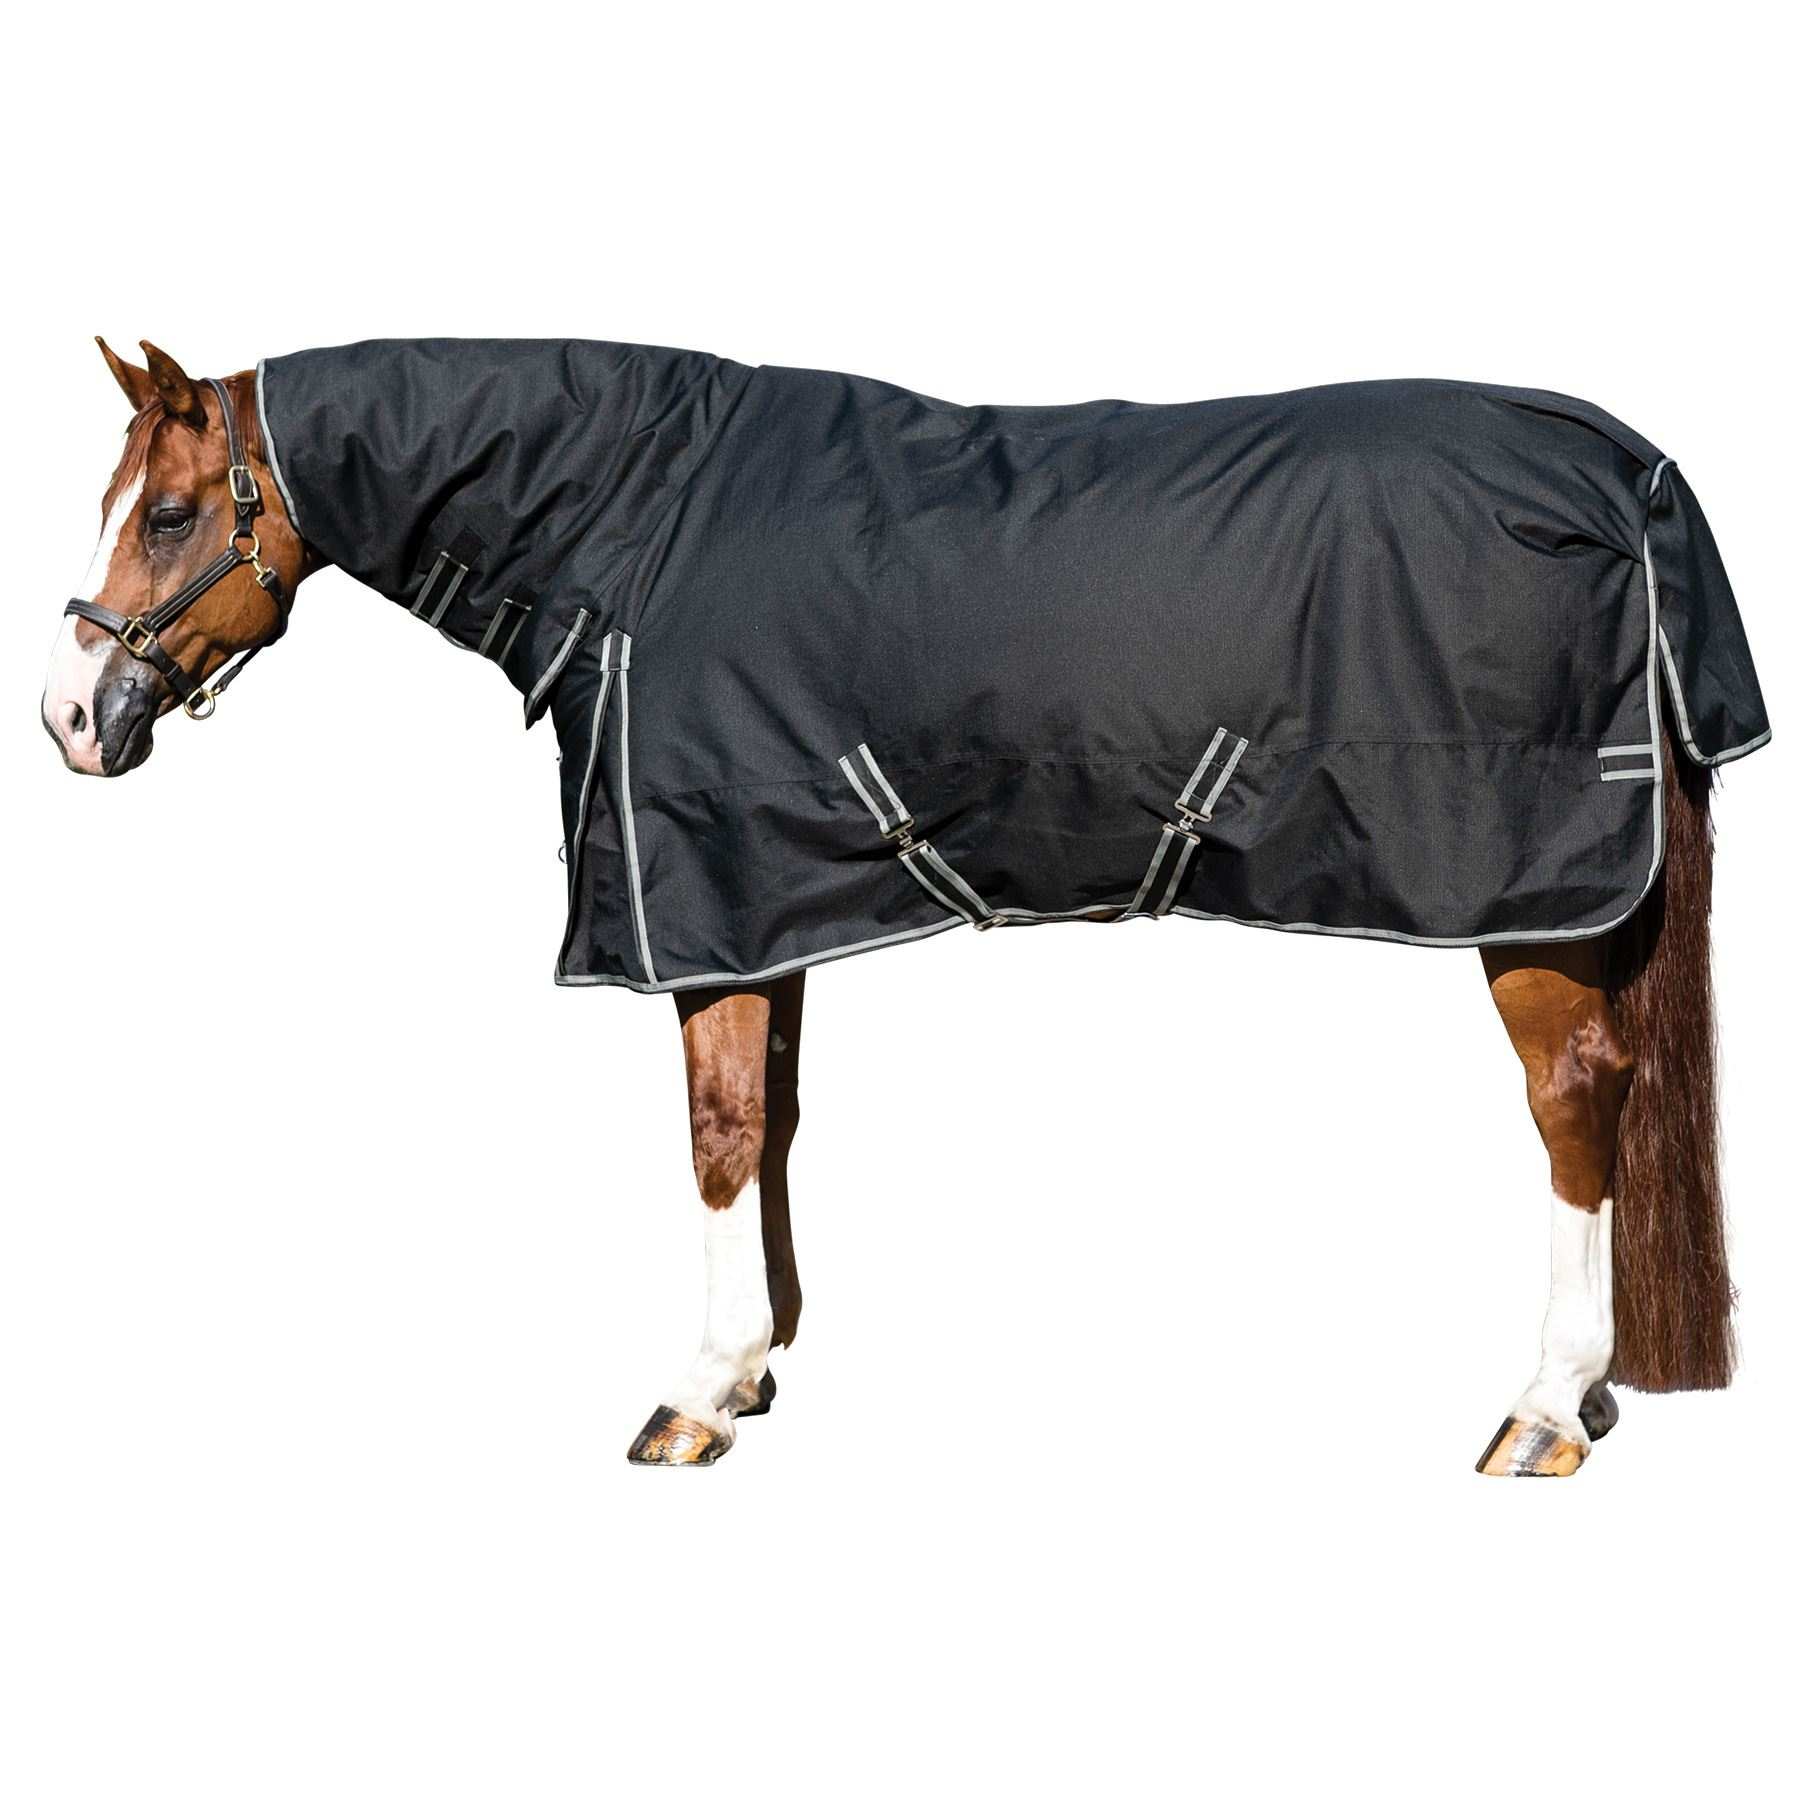 StormShield® Blizzard Combo Heavyweight Turnout Blanket